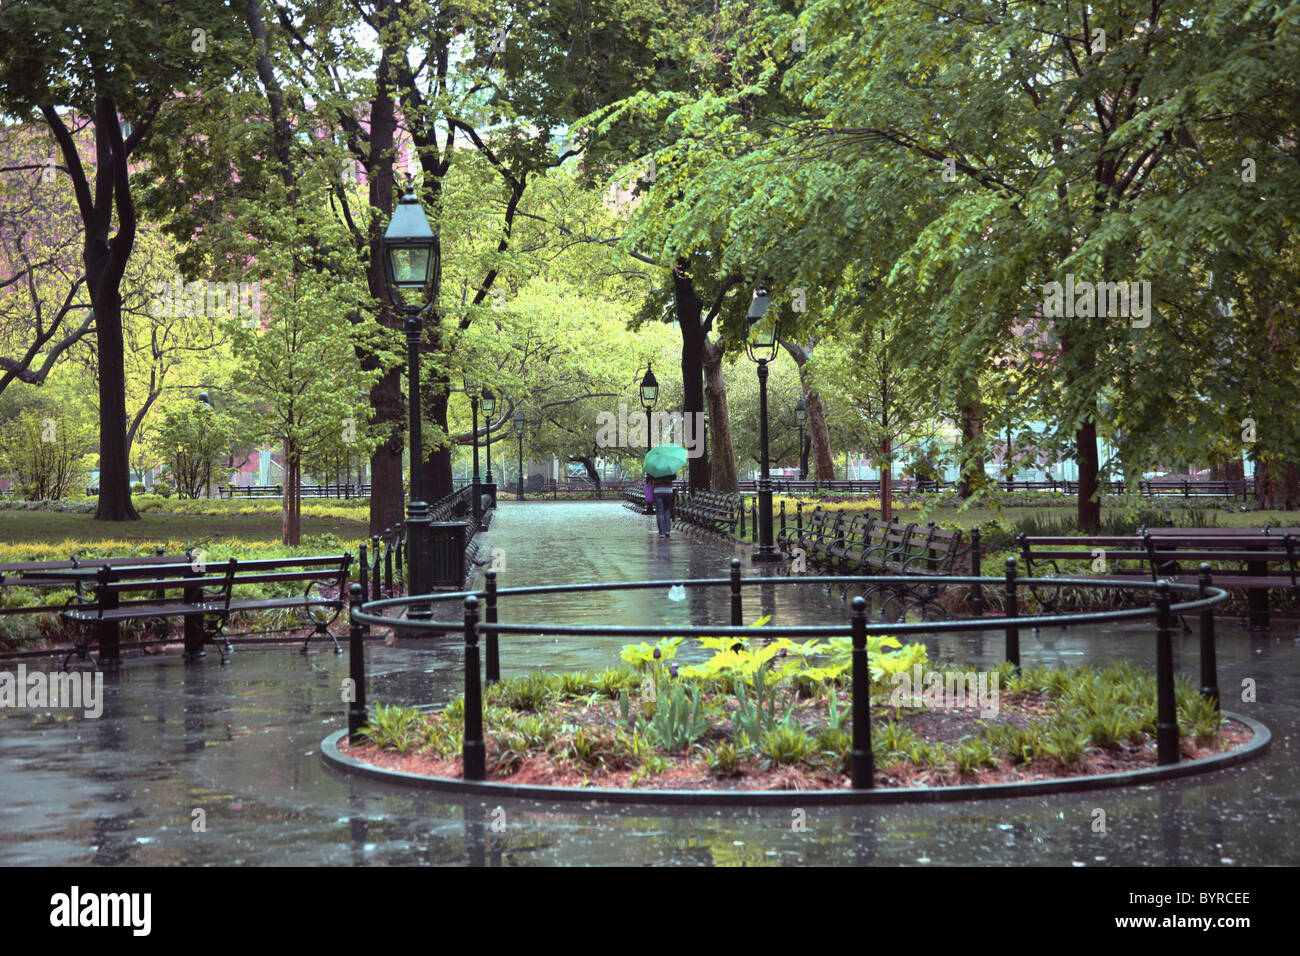 Chemins dans un parc par temps humide, Manhattan, New York City, New York, États-Unis d'Amérique Photo Stock